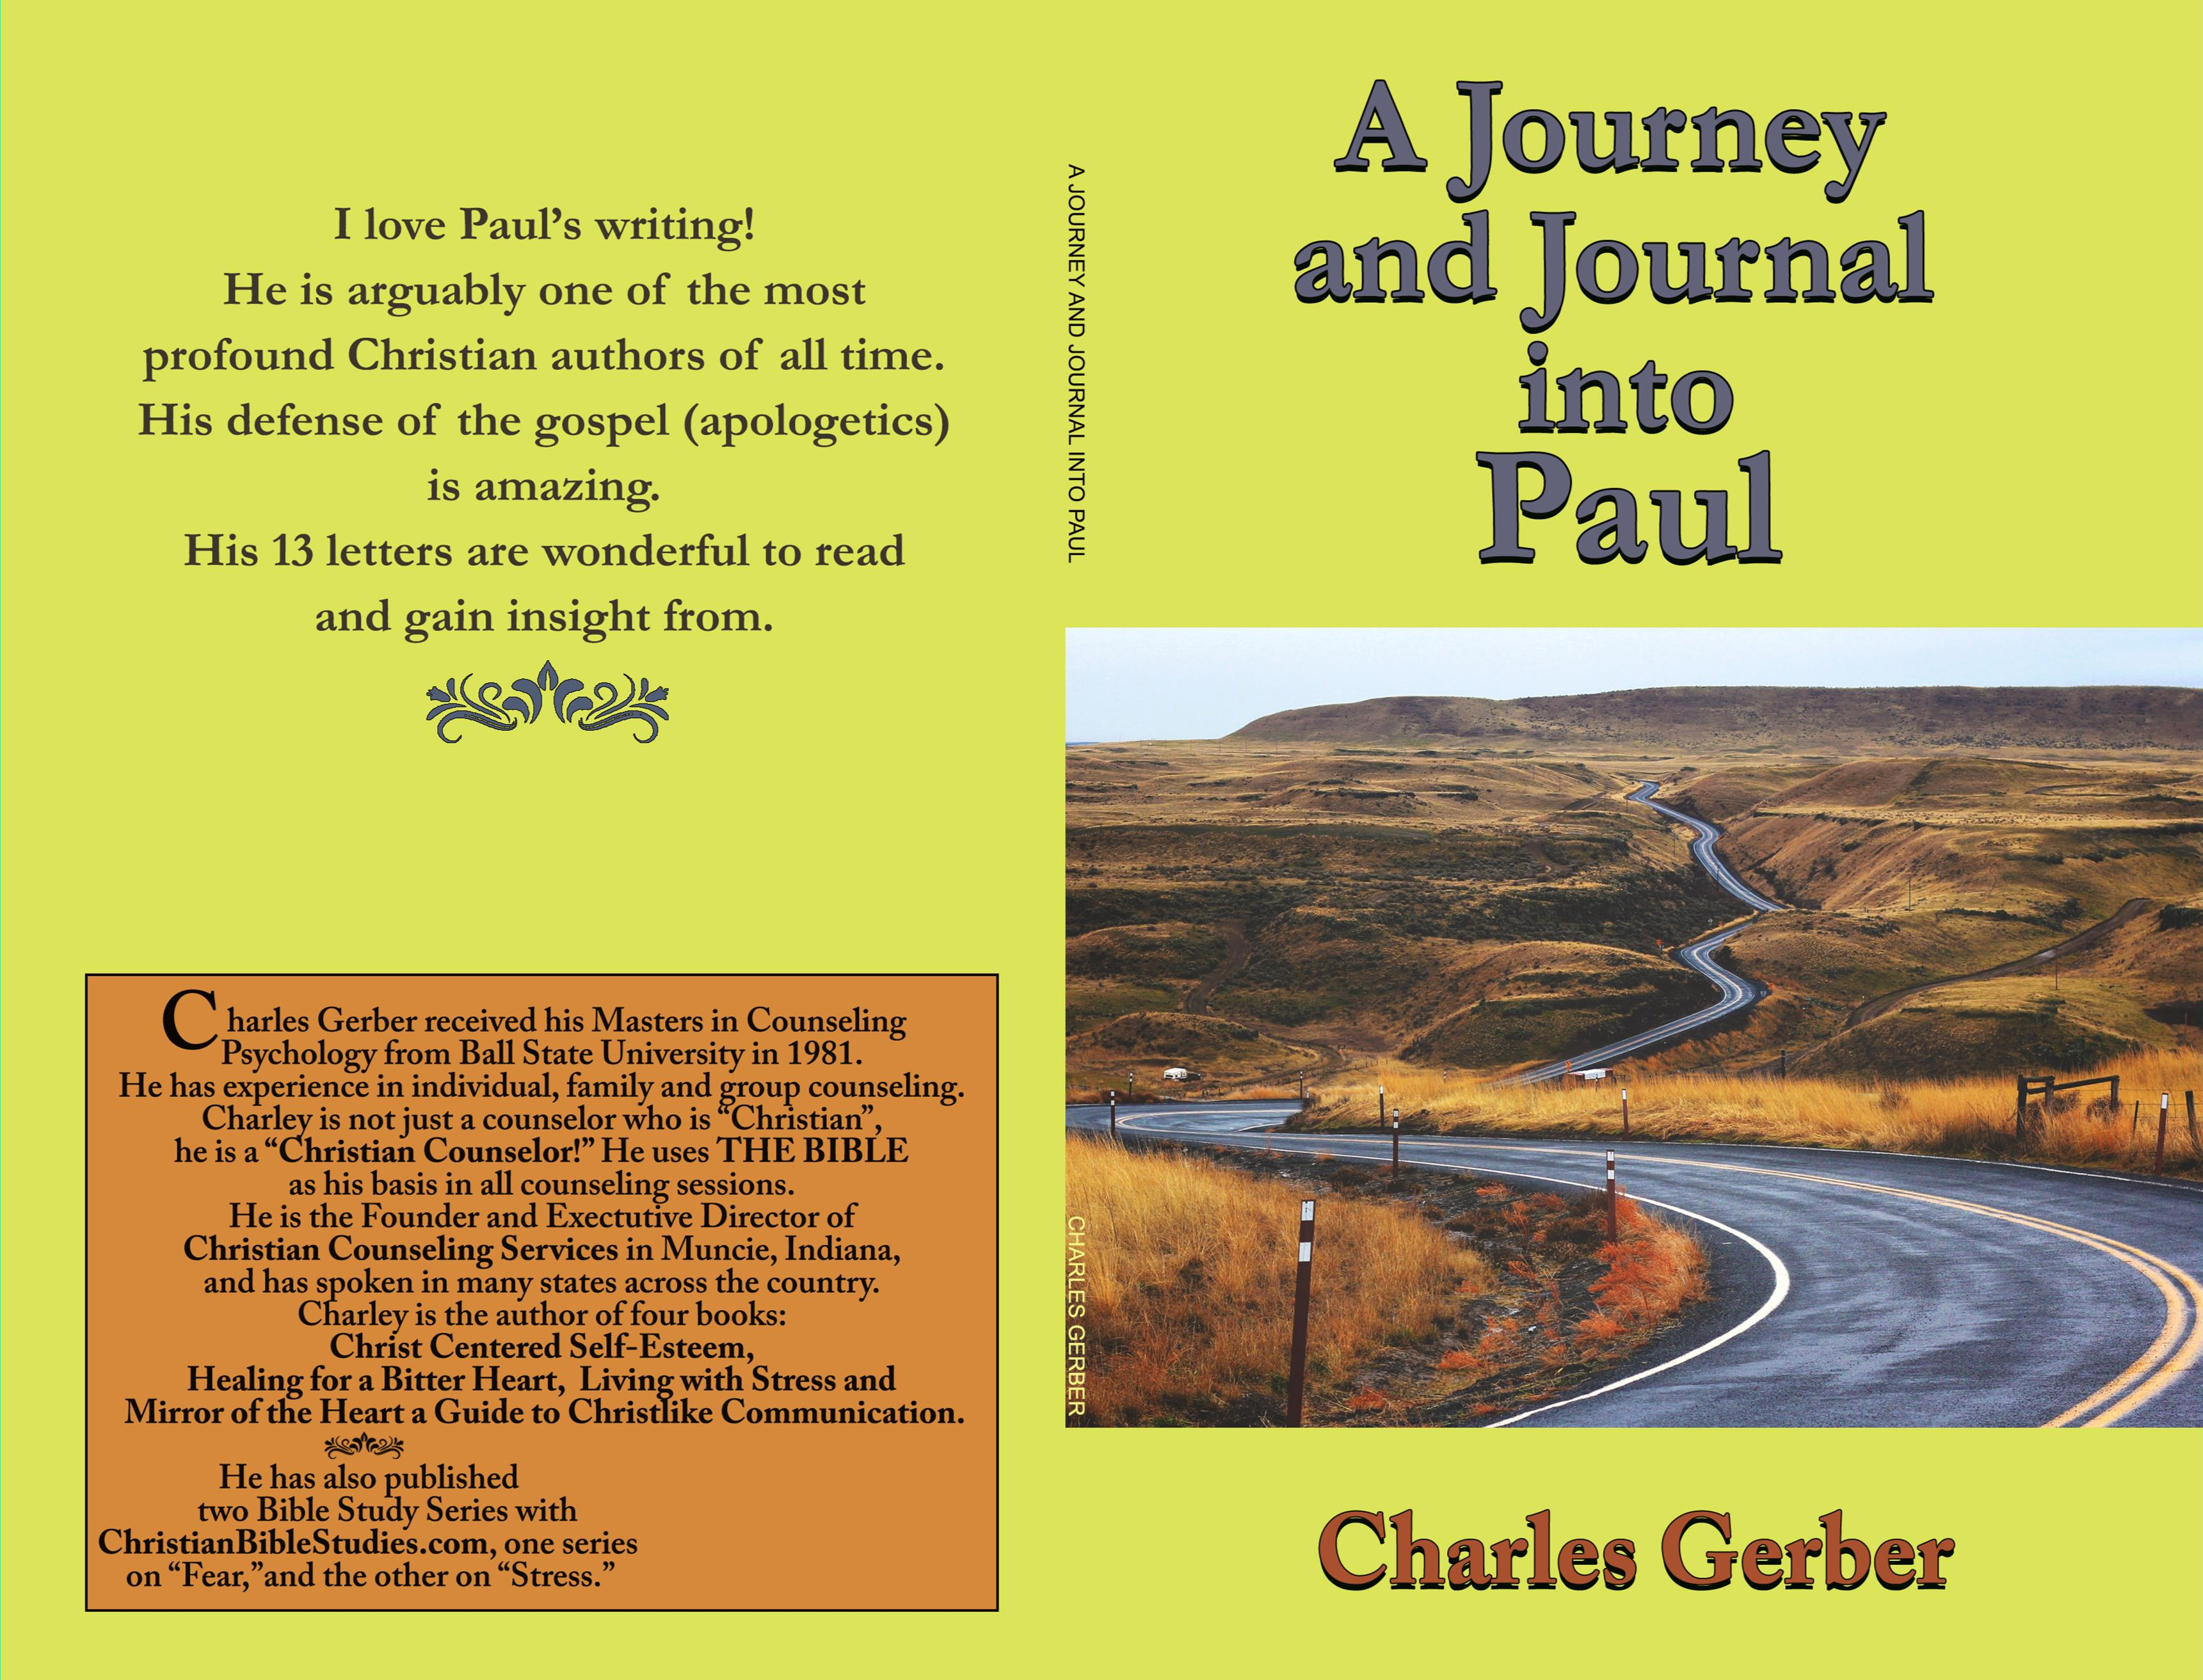 A Journal and Journey into Paul cover image